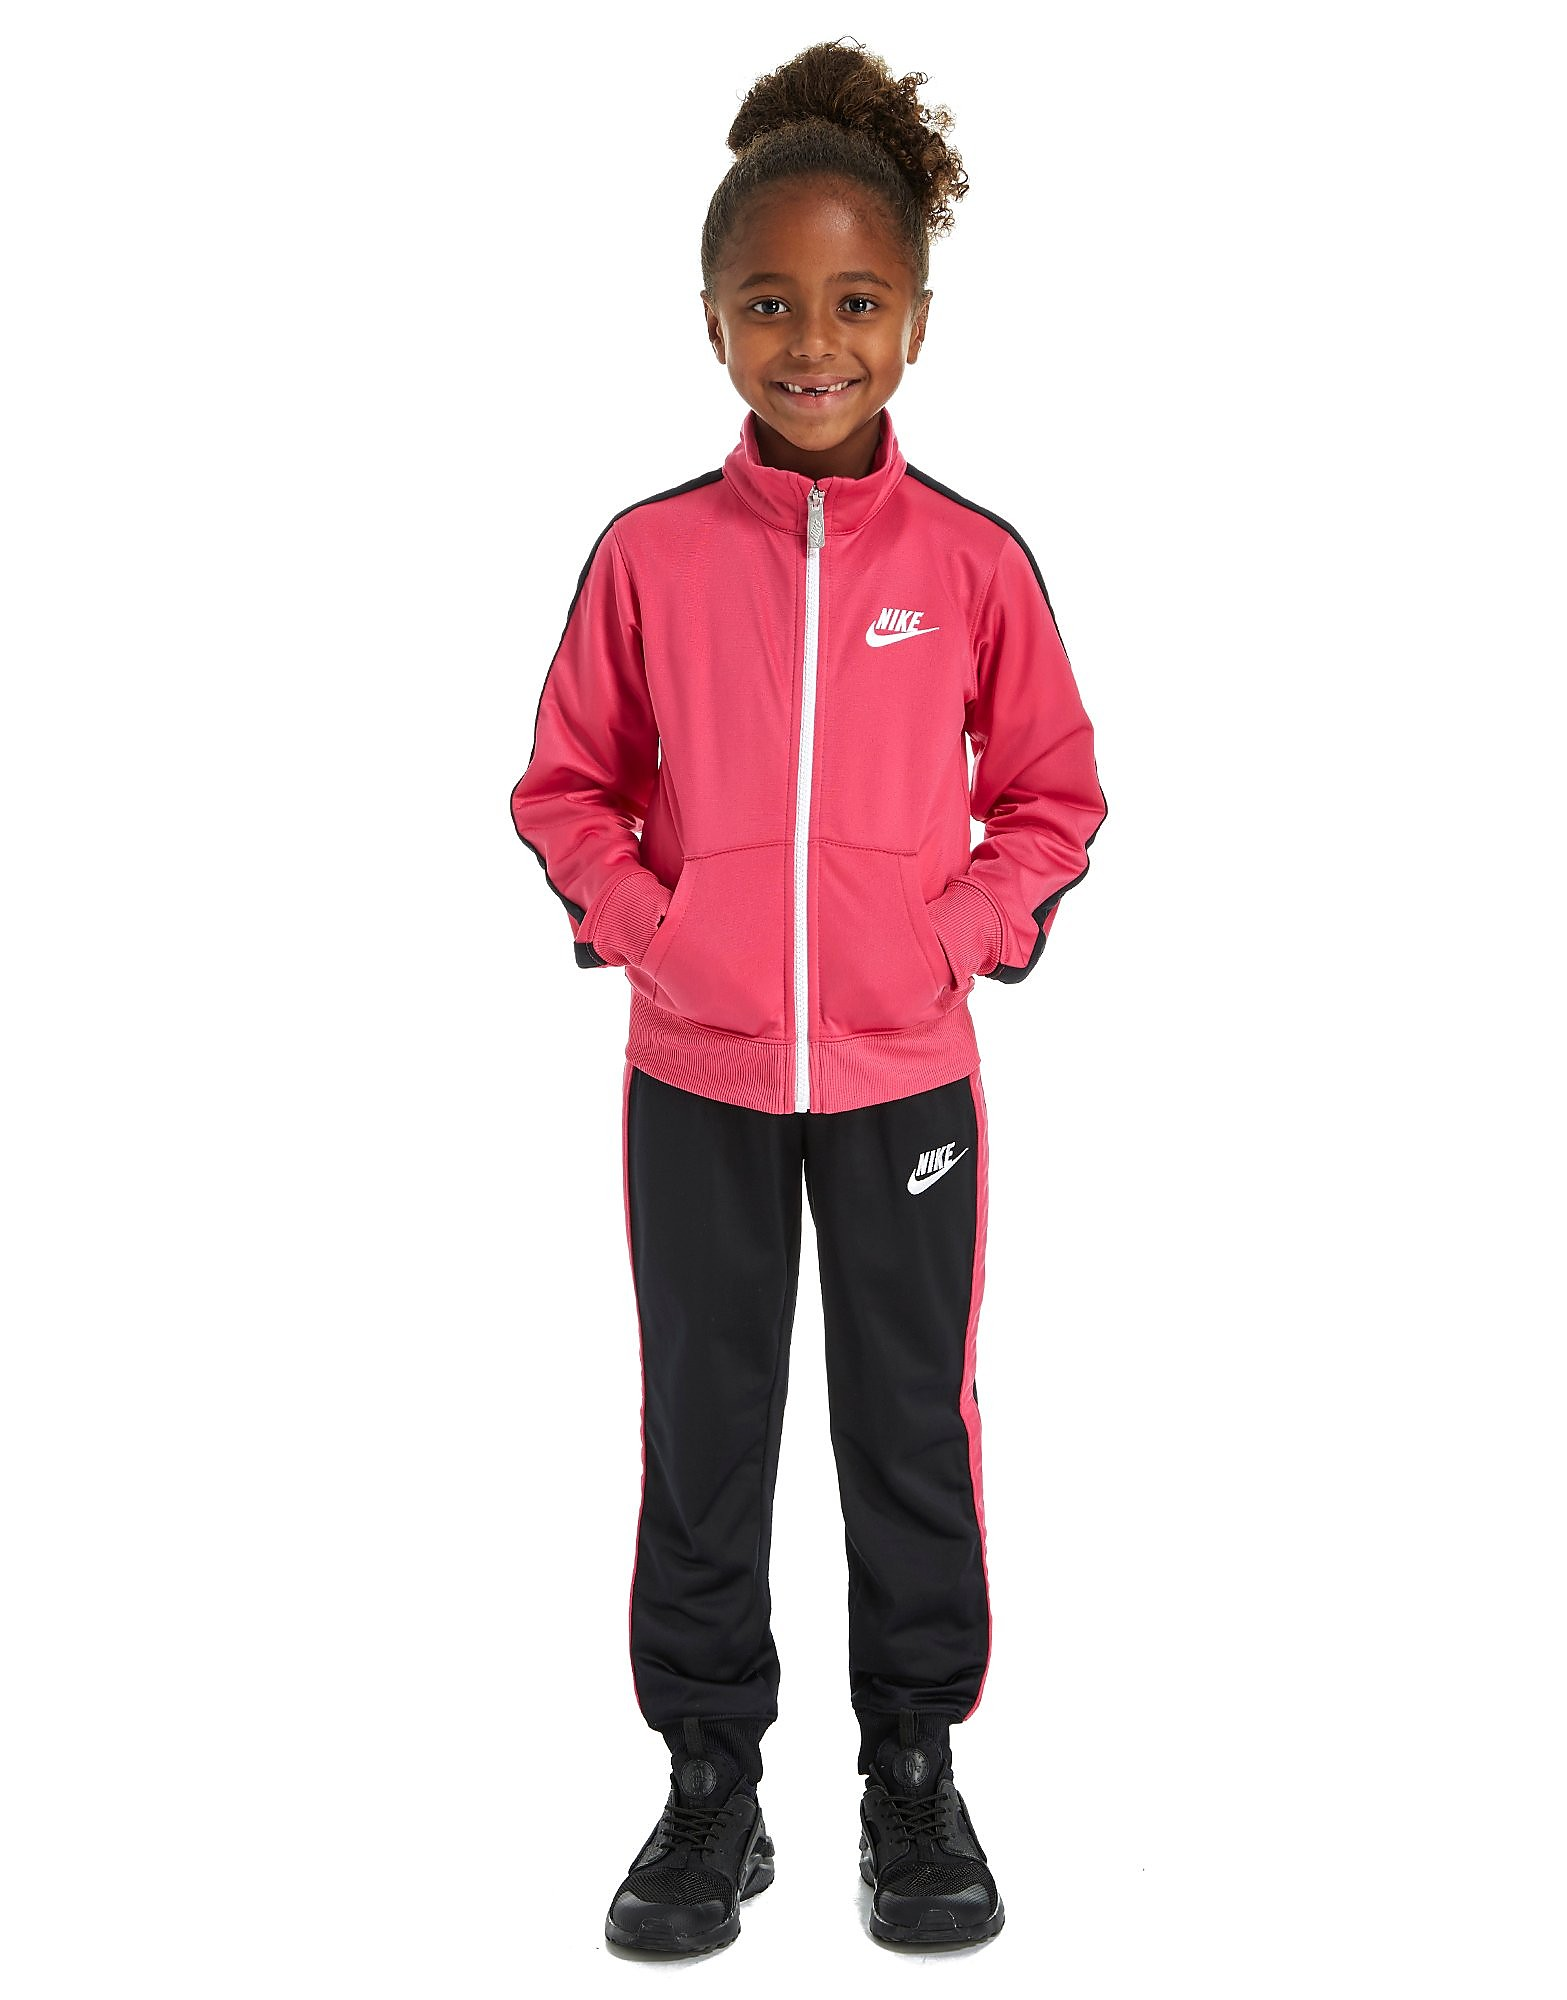 Nike Girls' Tricot Tracksuit Children